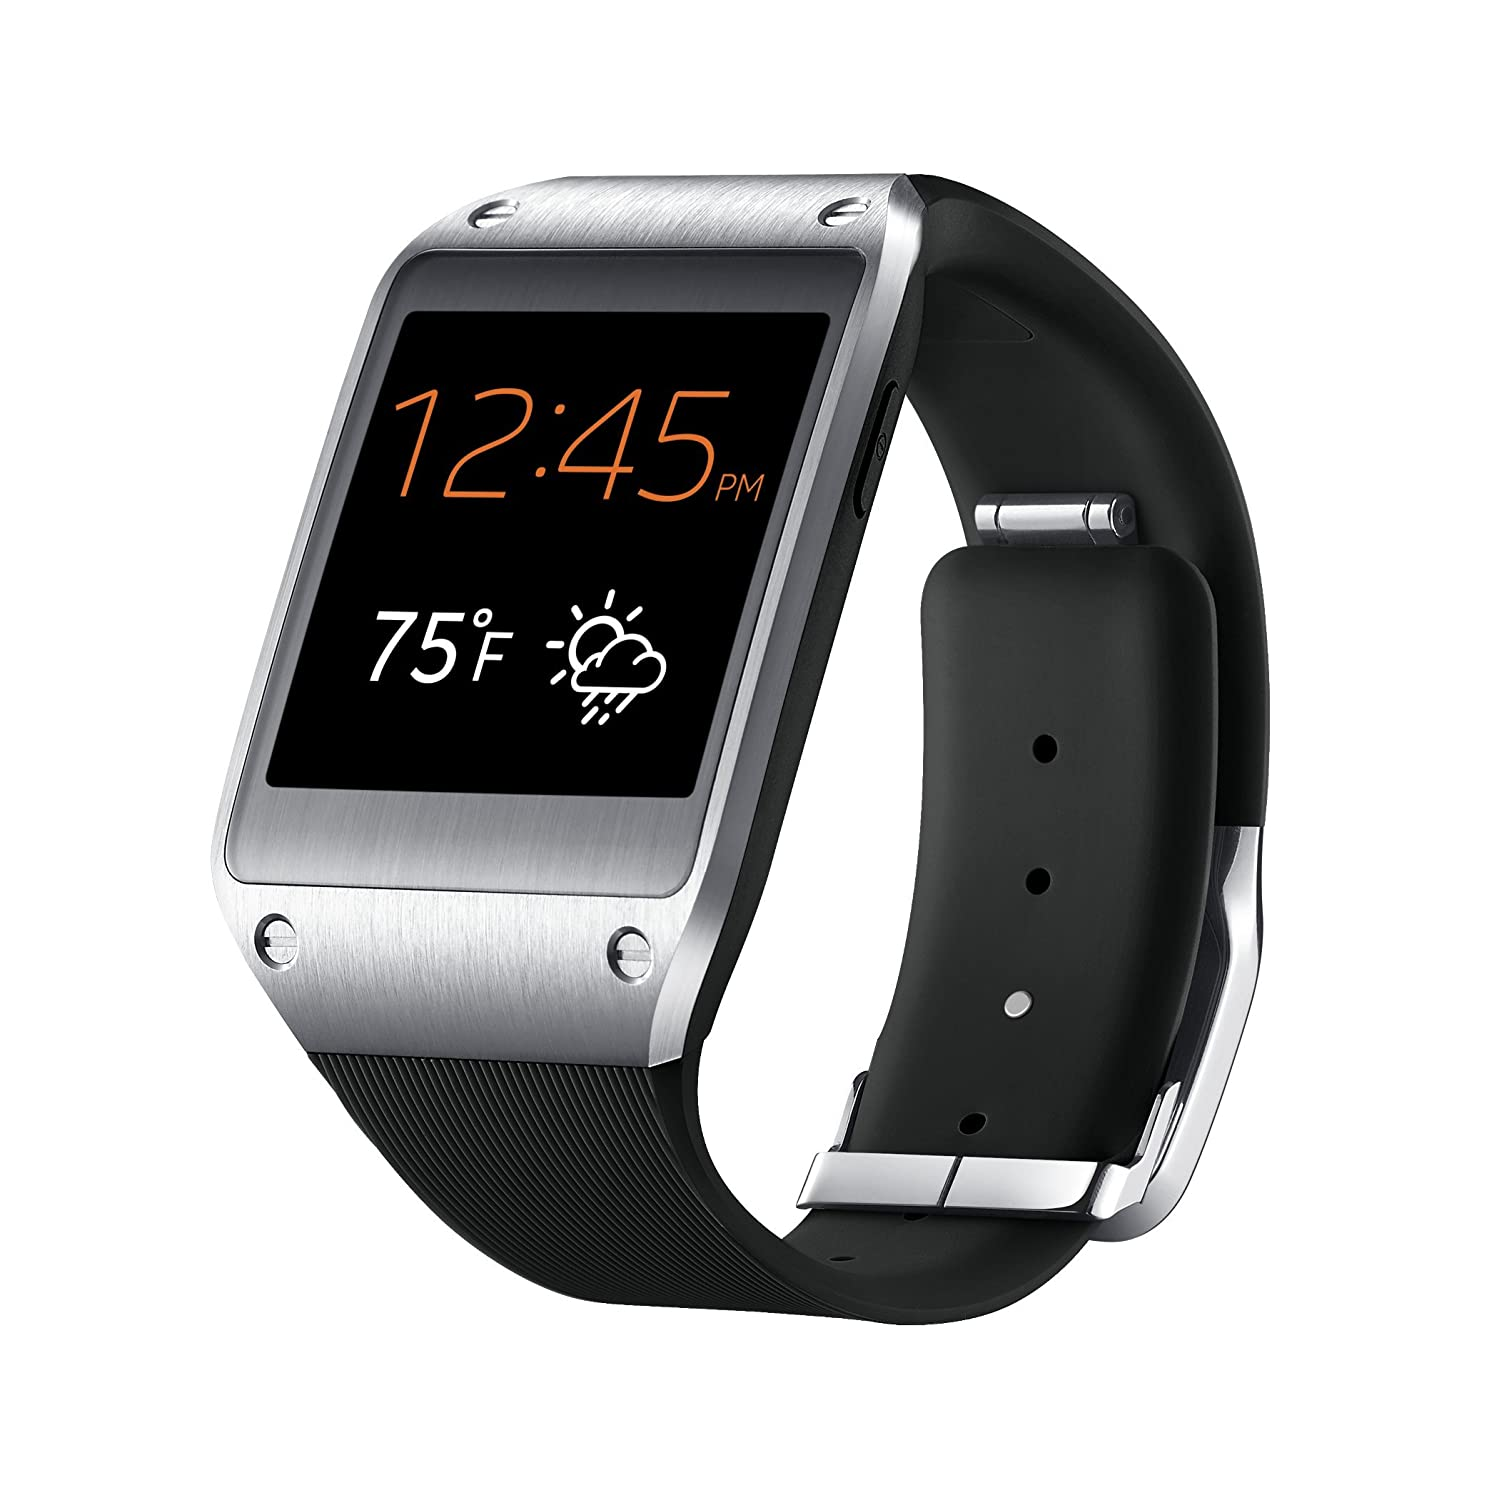 samsung galaxy gear smart watch price in pakistan samsung in pakistan at symbios pk. Black Bedroom Furniture Sets. Home Design Ideas